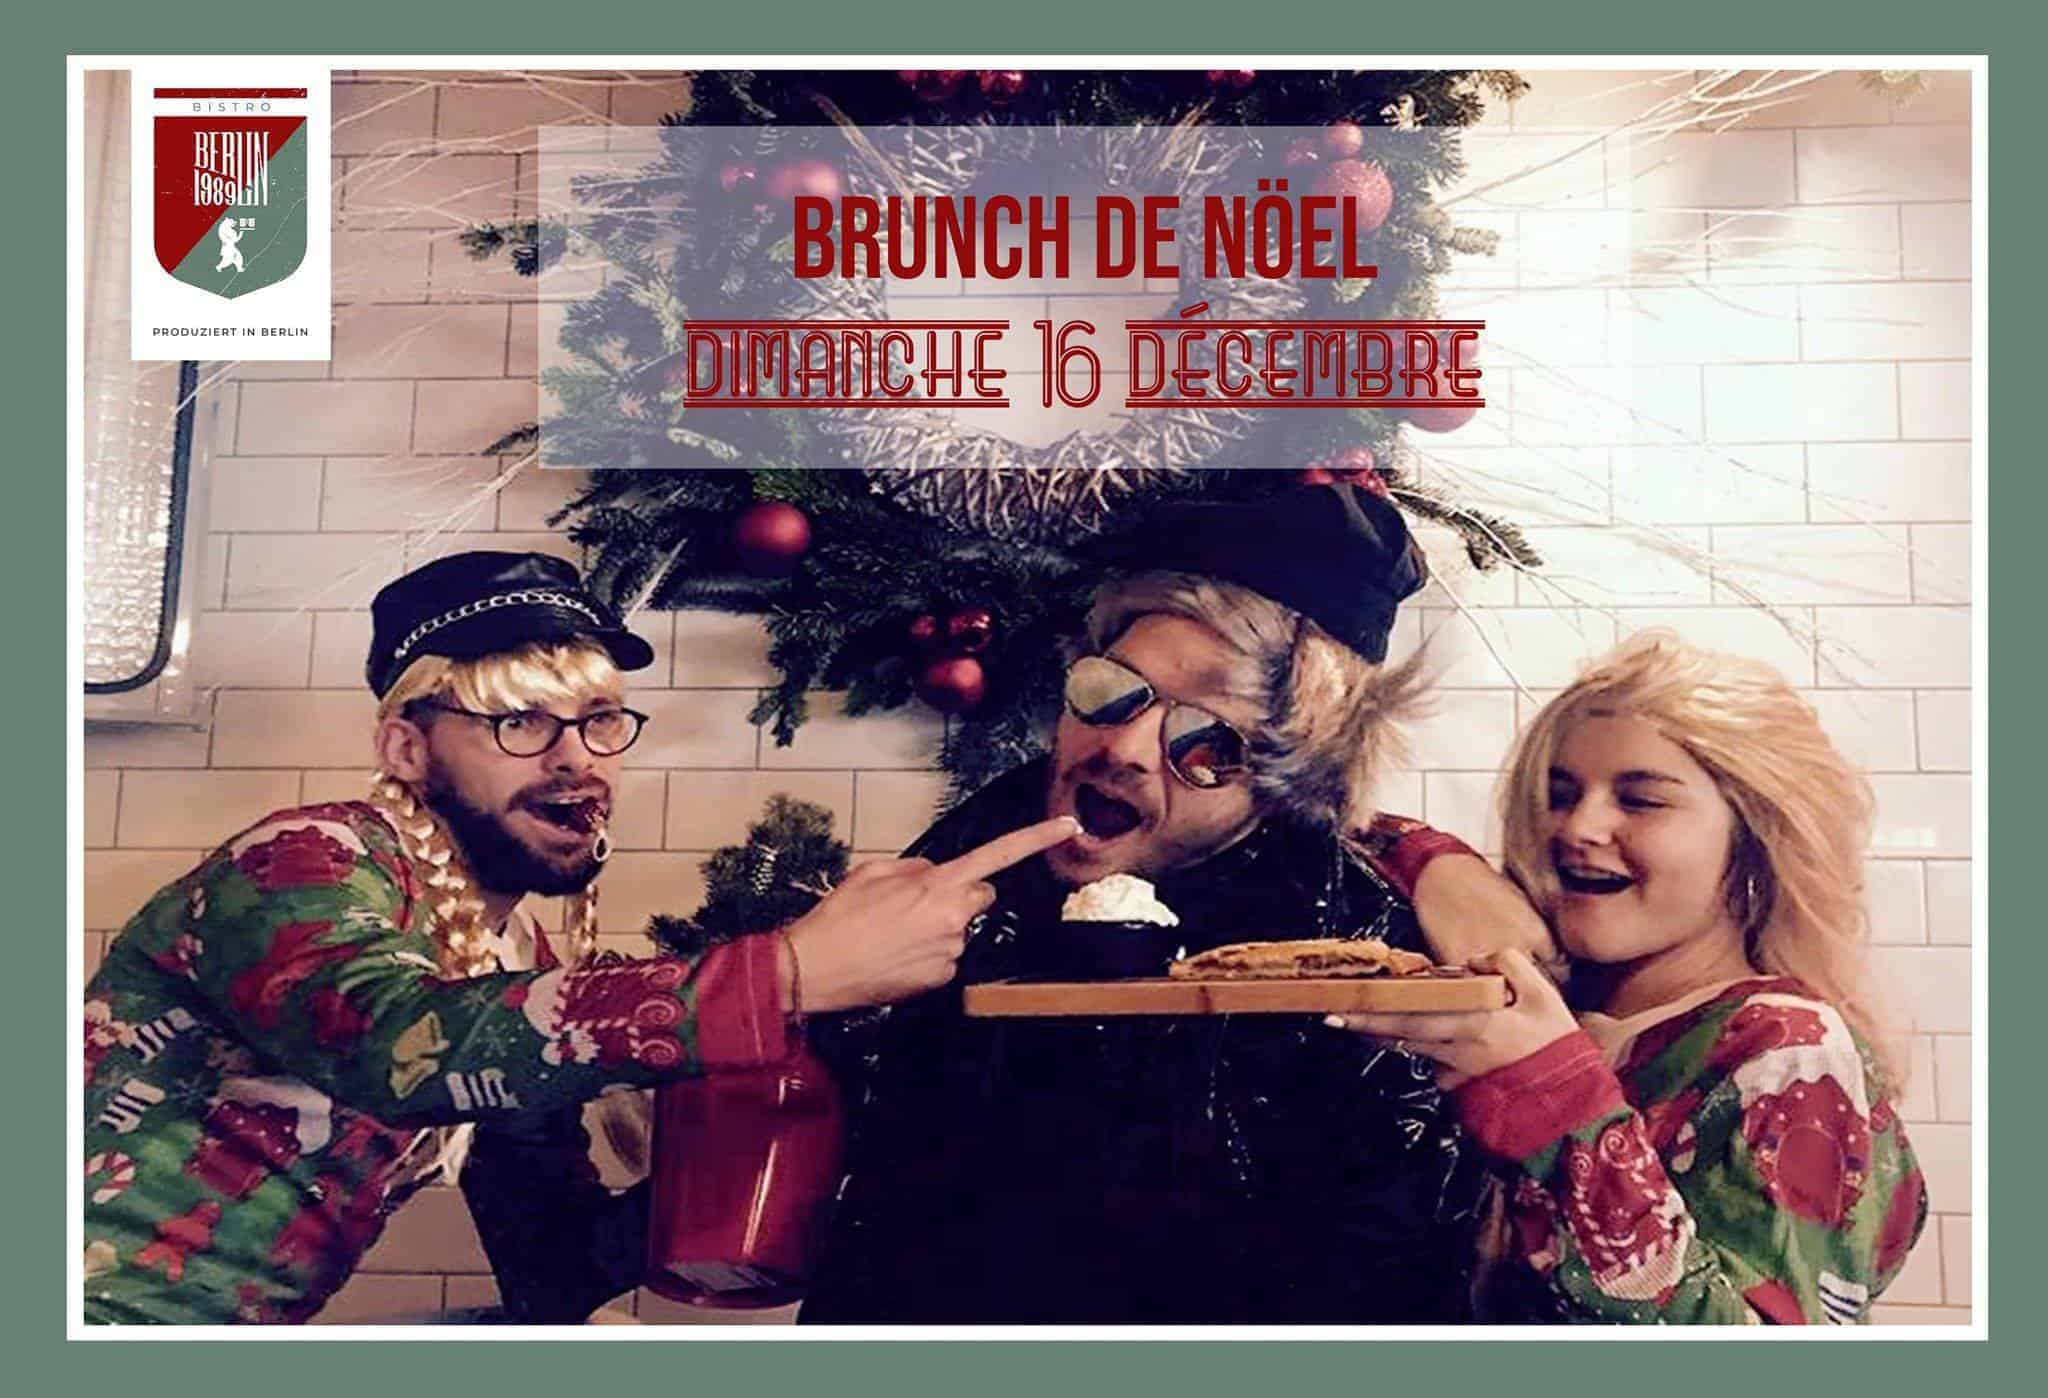 brunch de noel berlin 1989